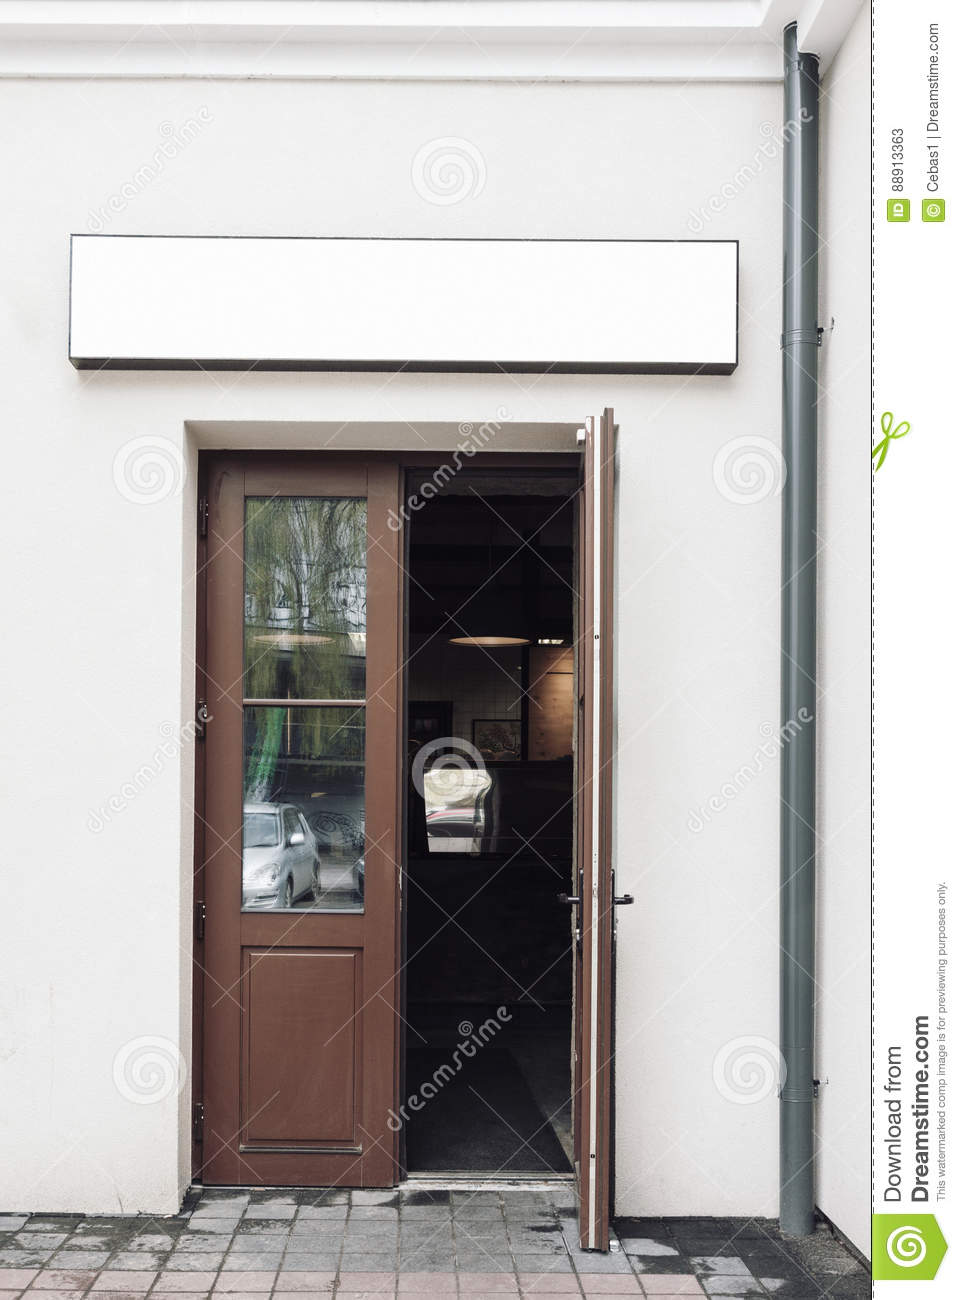 Cafe doors with empty signage mockup